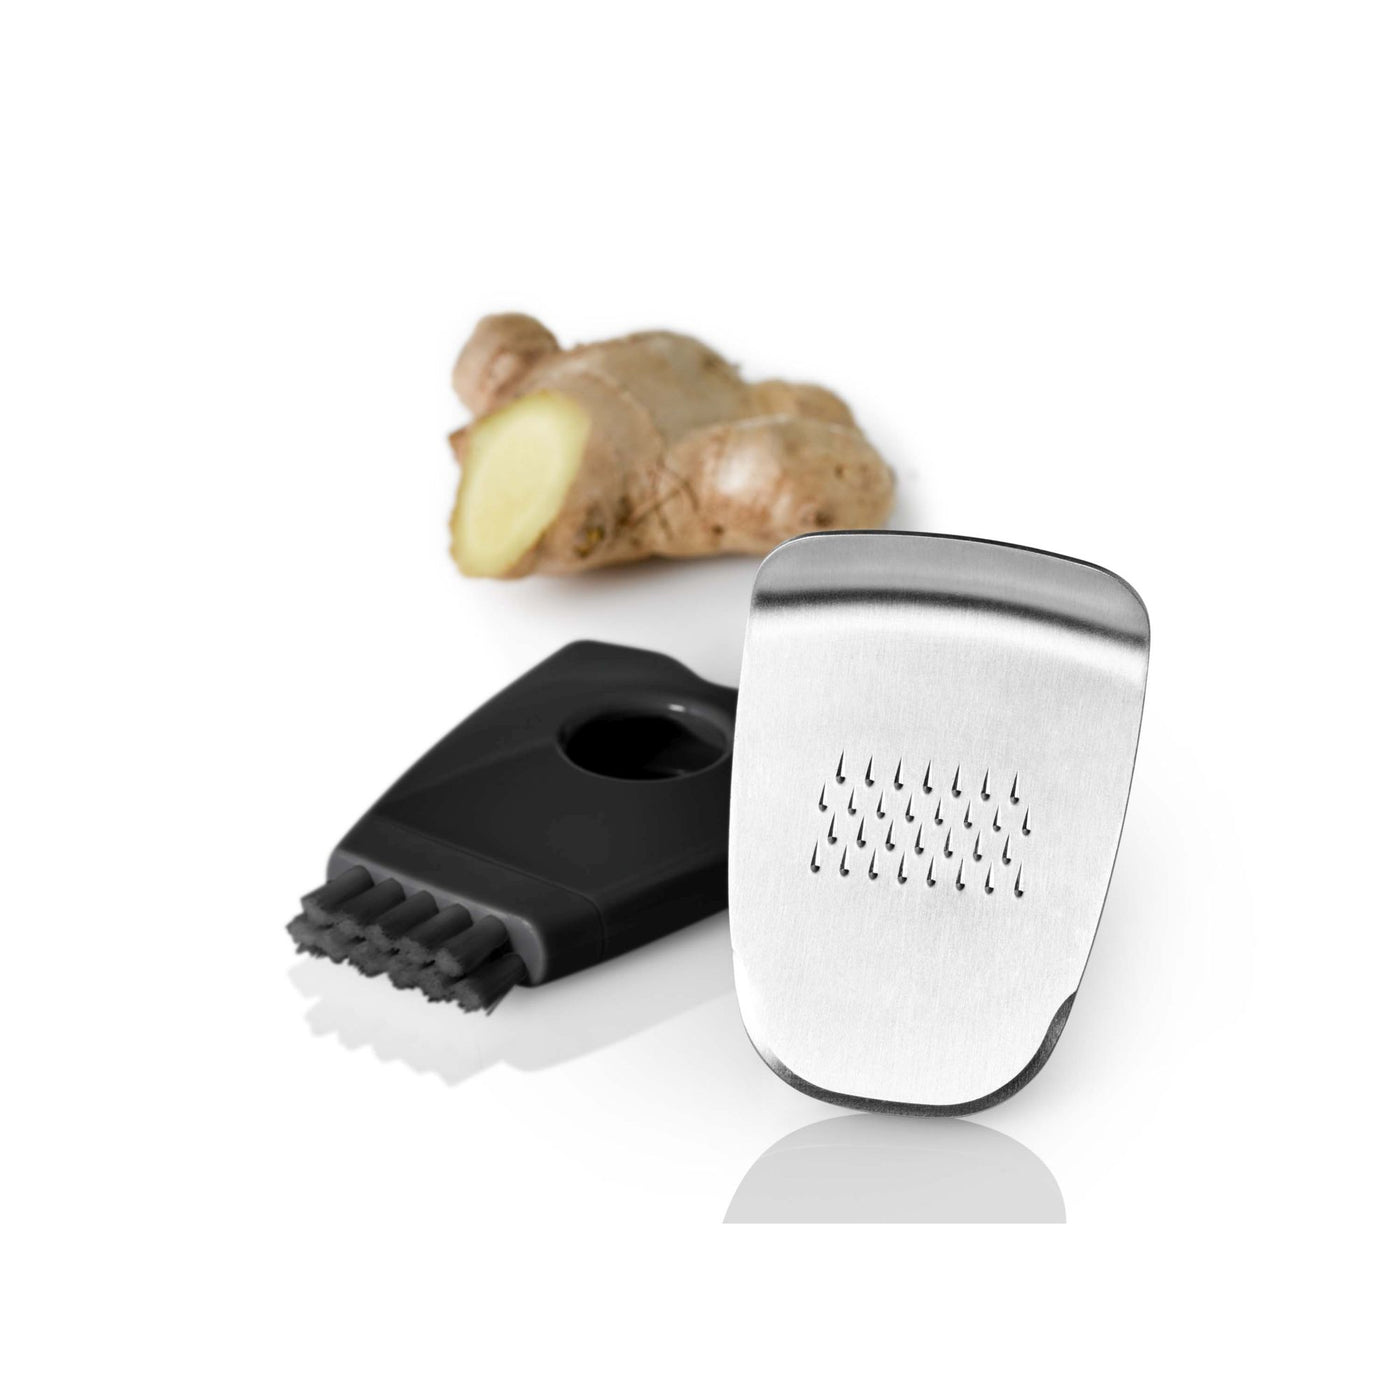 Ginger + Special Grater in Stainless Steel